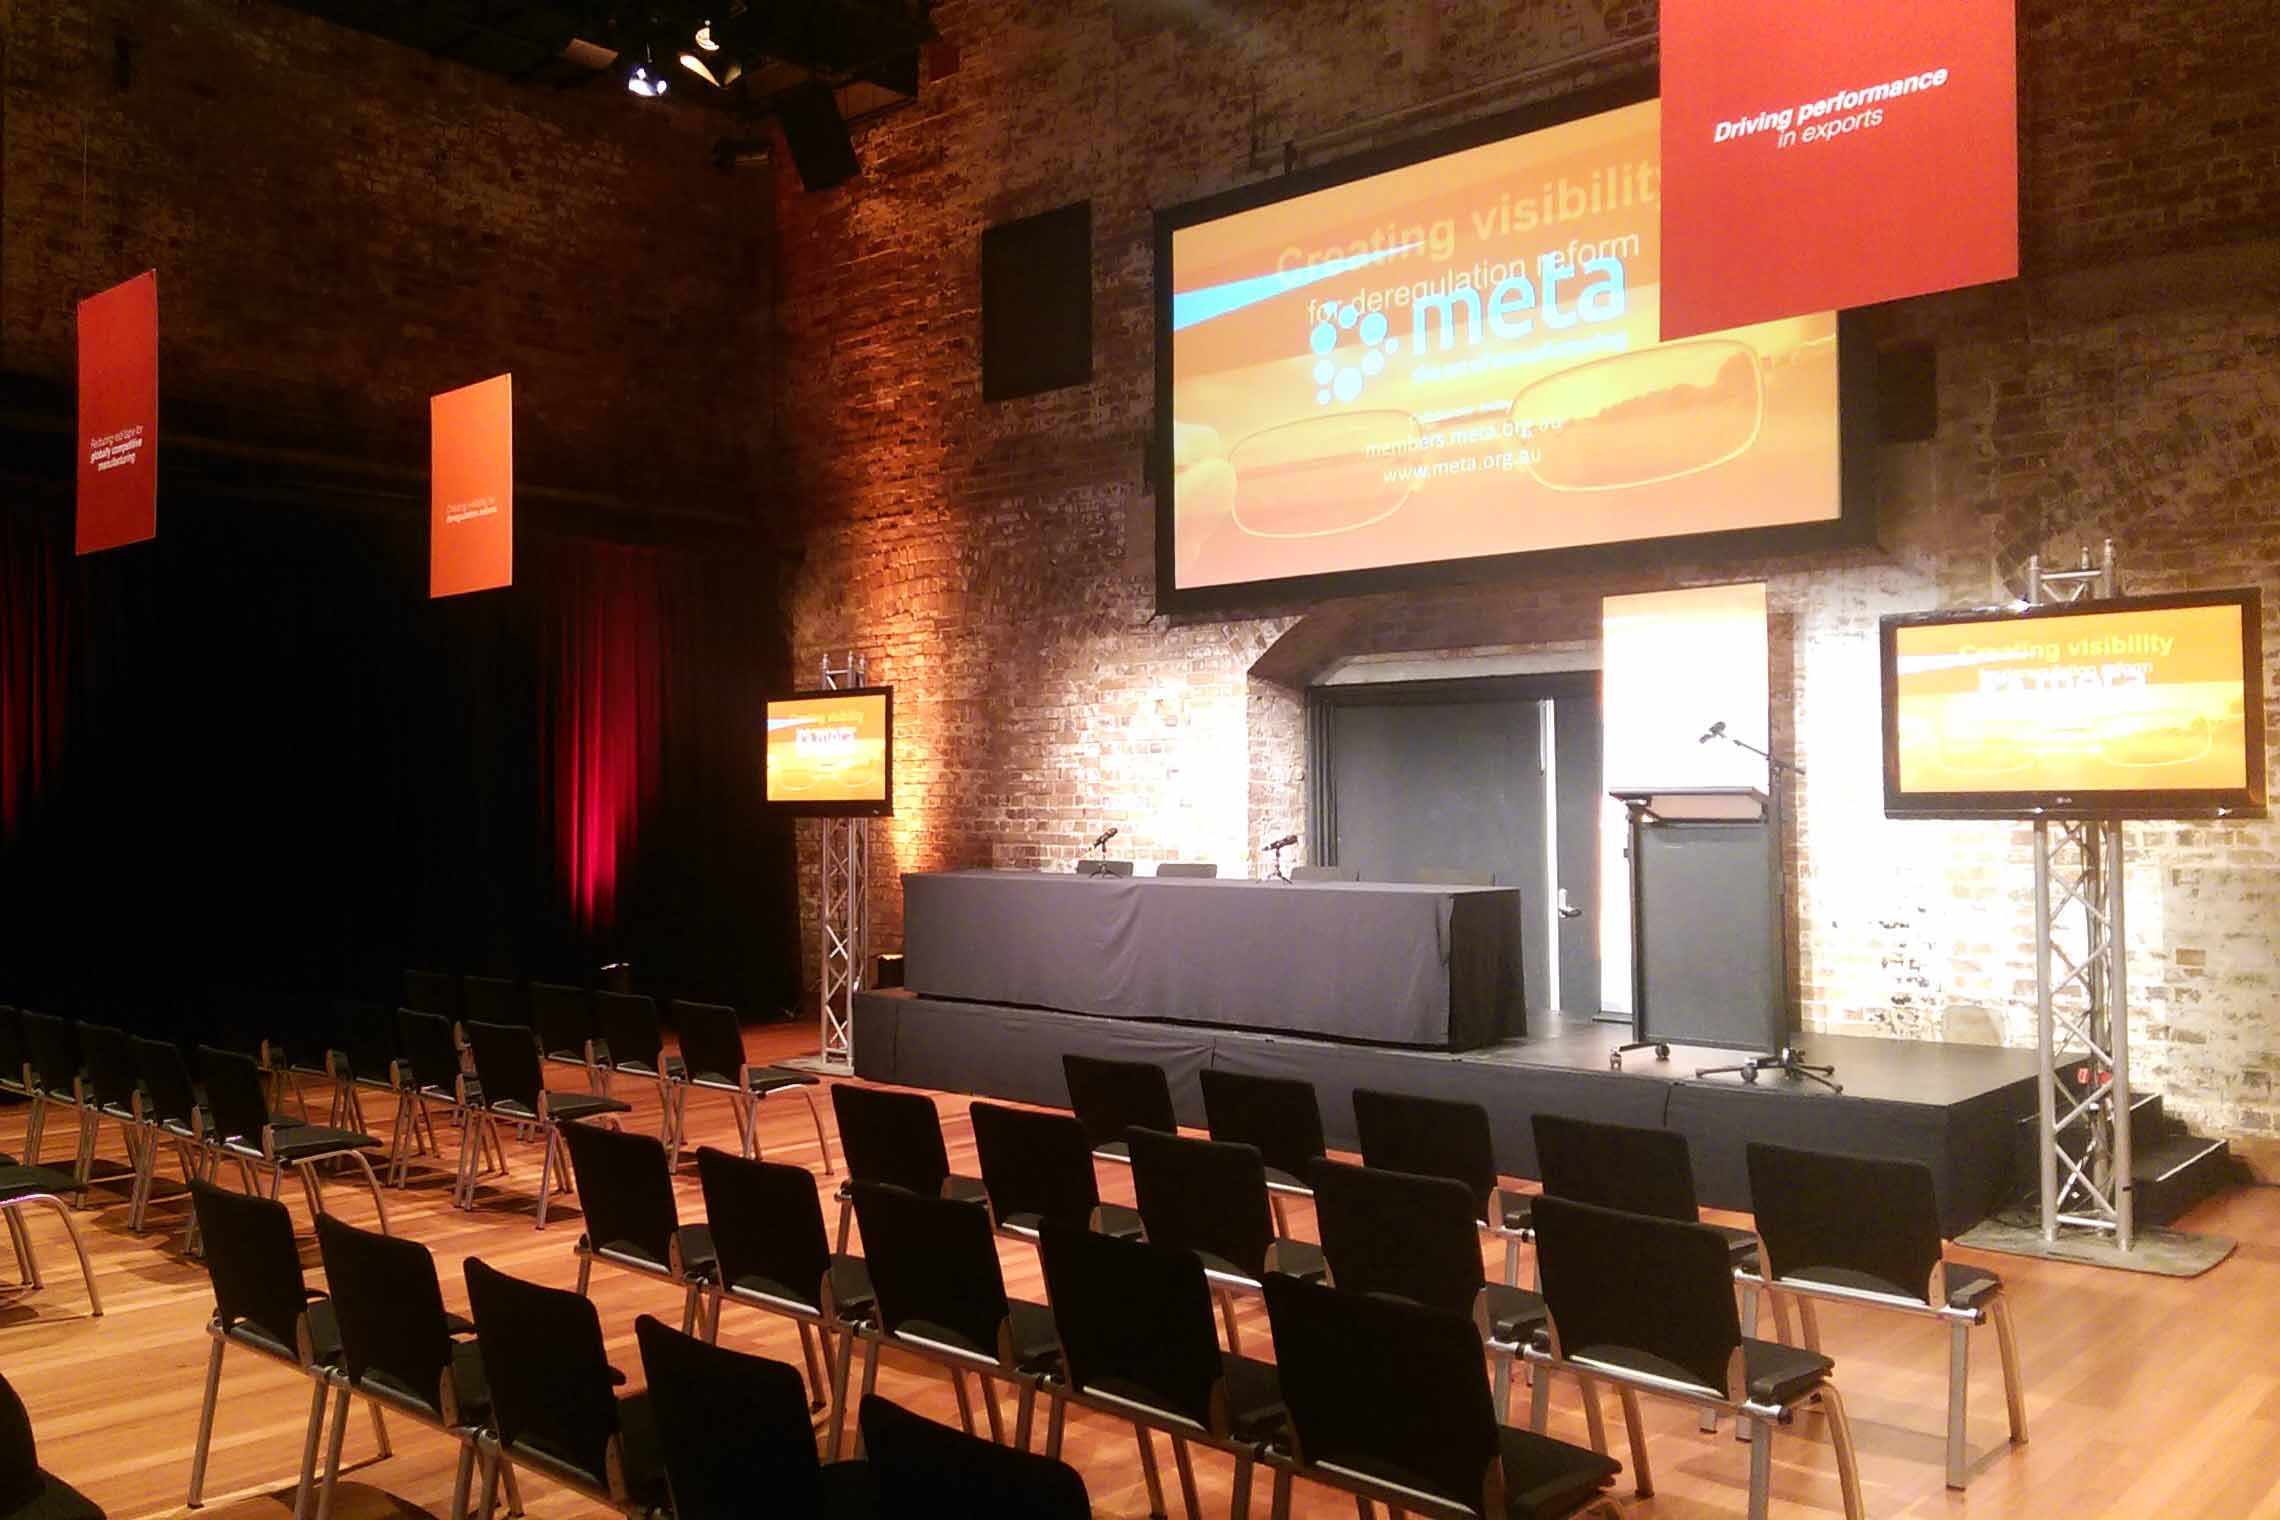 Roslyn Packer Theatre – Conference Venues